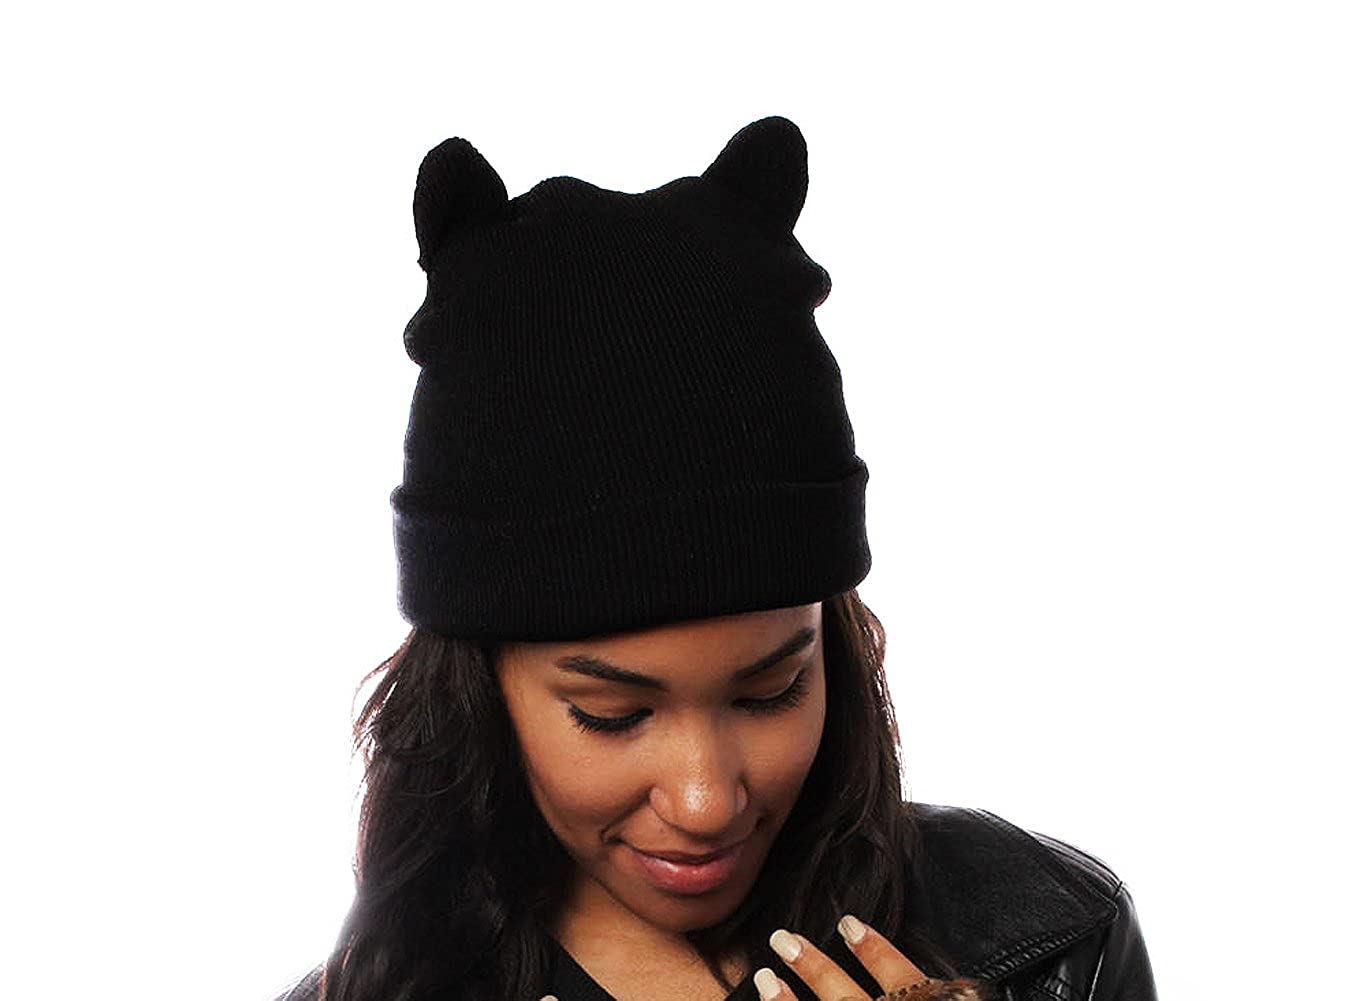 dc1ac7a0daa Ladies Black Beanie Hat with Cool Cat Ears Design  Amazon.co.uk  Clothing